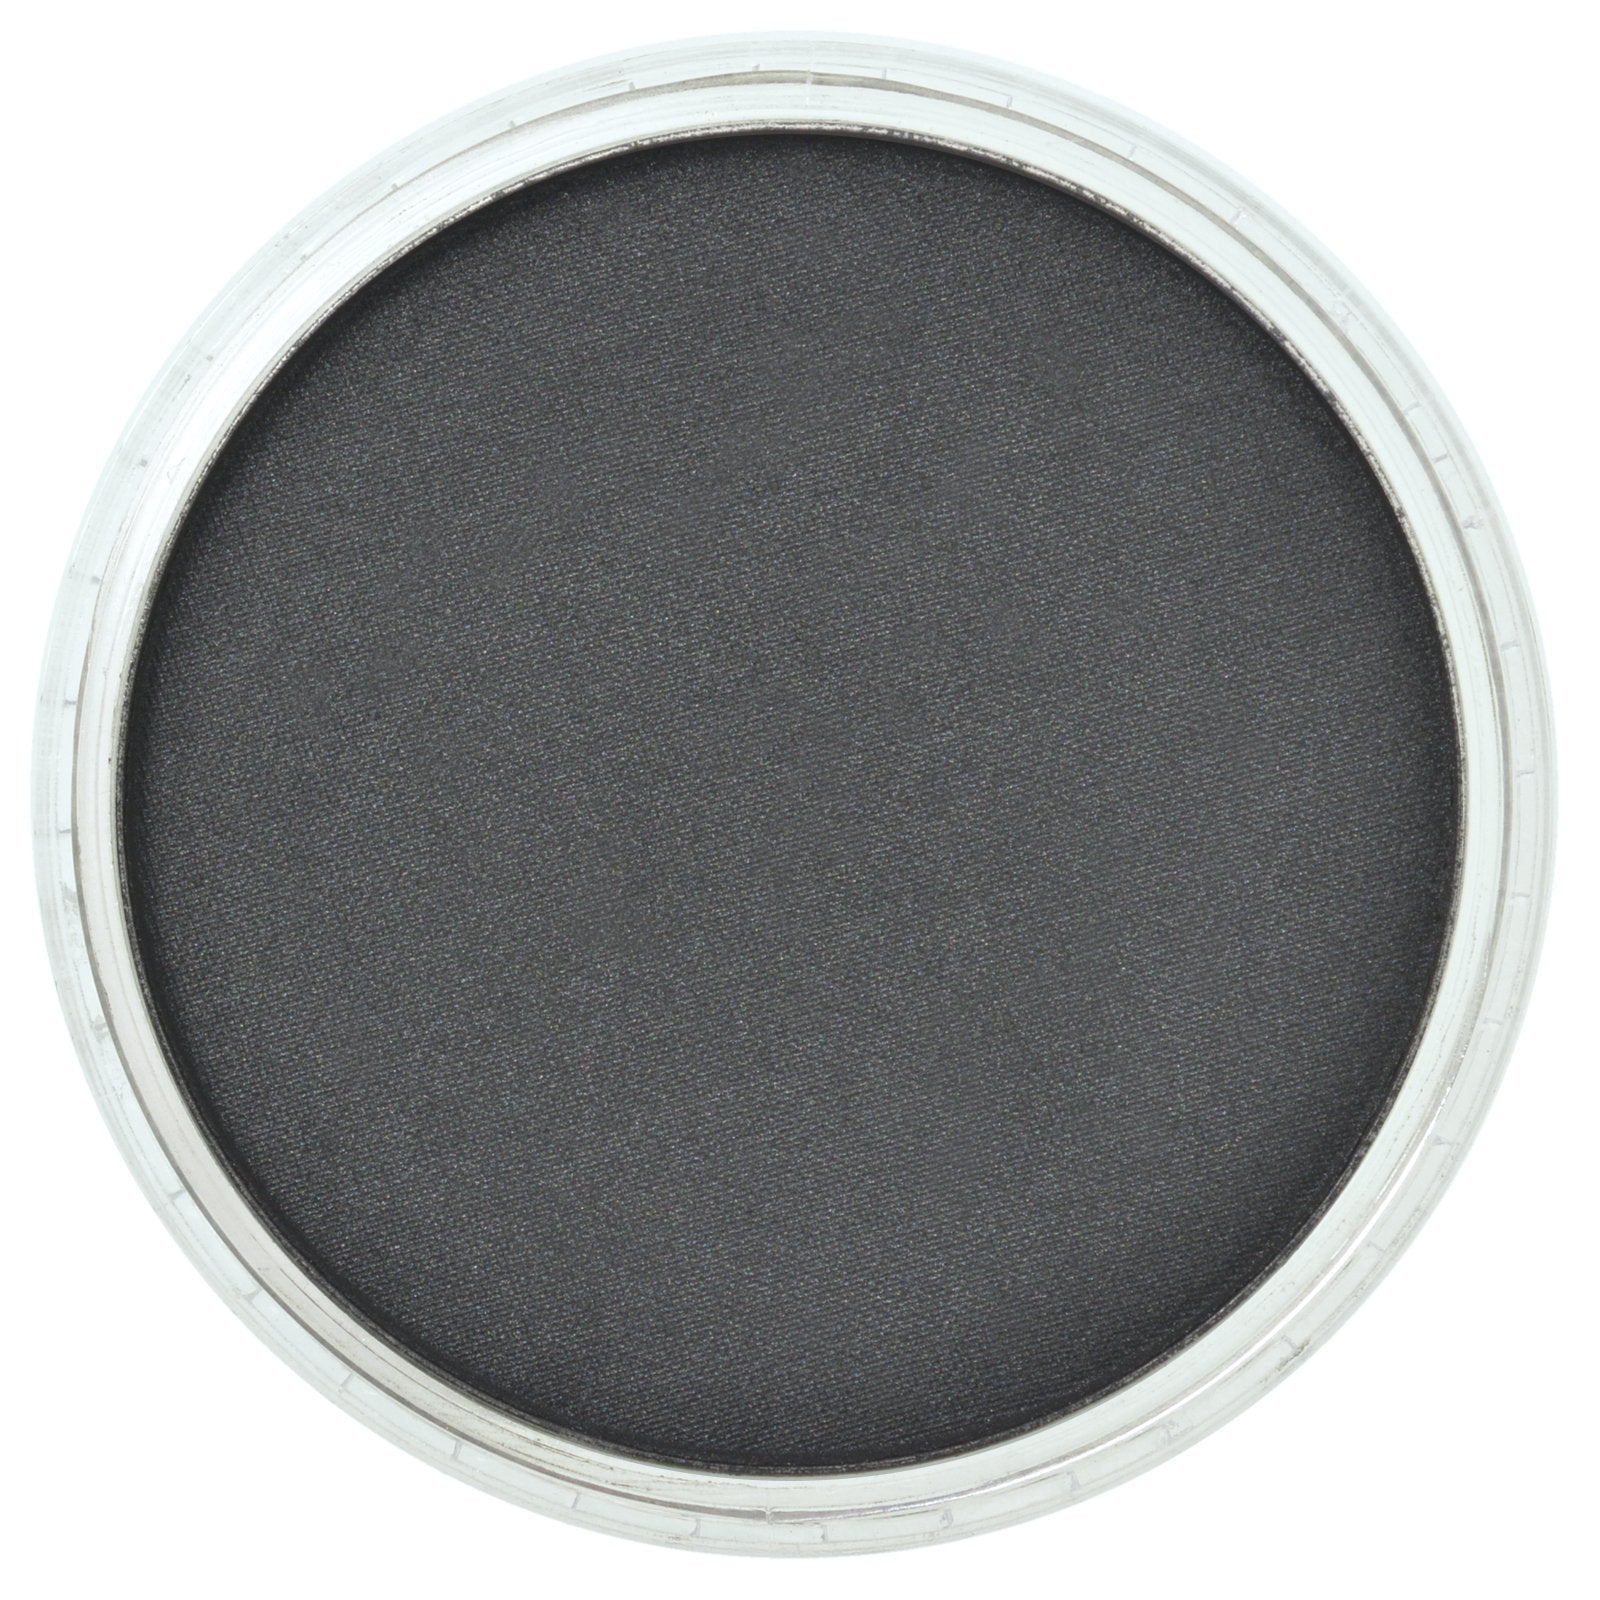 PanPastel - 013 PEARL MEDIUM - BLACK FINE